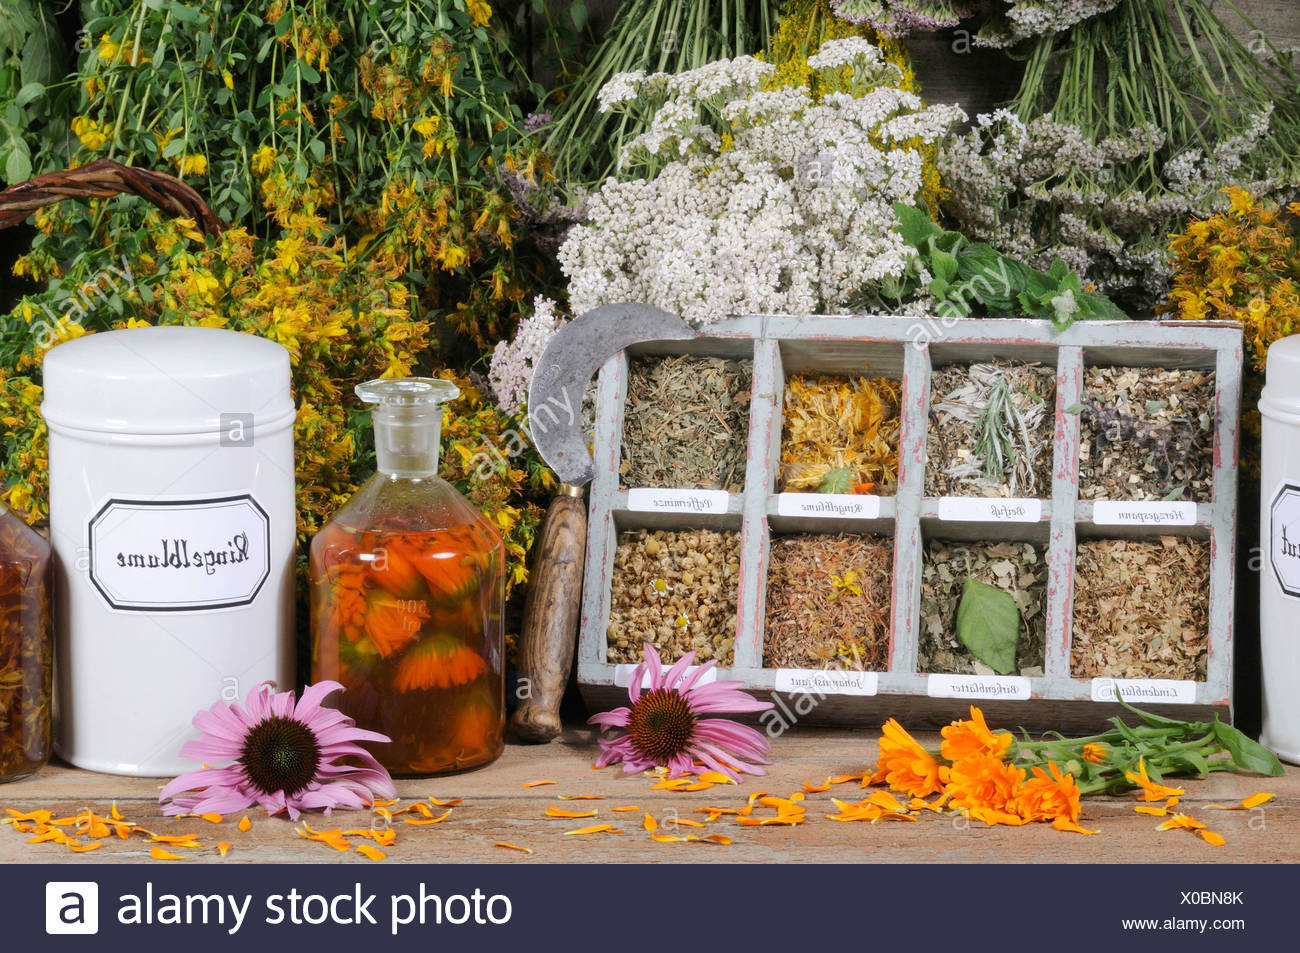 medicinal herbs stockfotos medicinal herbs bilder alamy. Black Bedroom Furniture Sets. Home Design Ideas